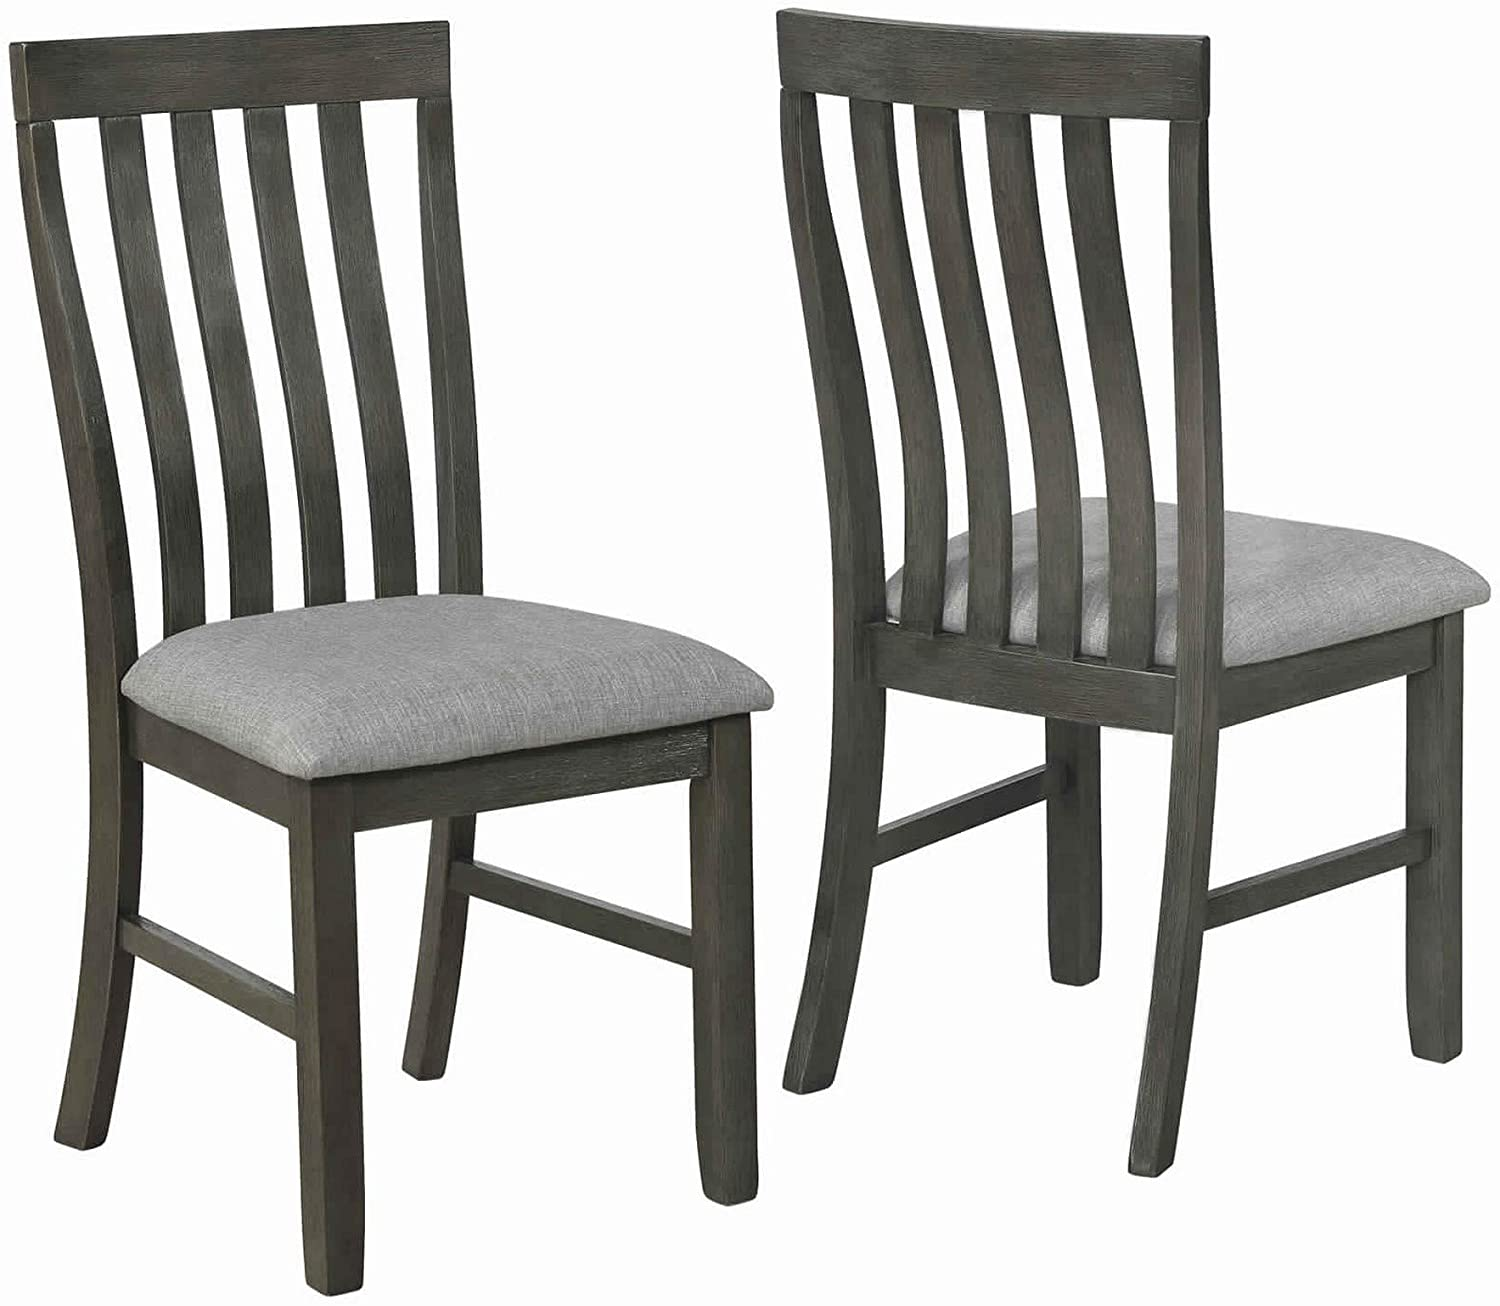 Benjara Wood and Fabric Dining Chair with Slatted Backrest, Brown and Gray